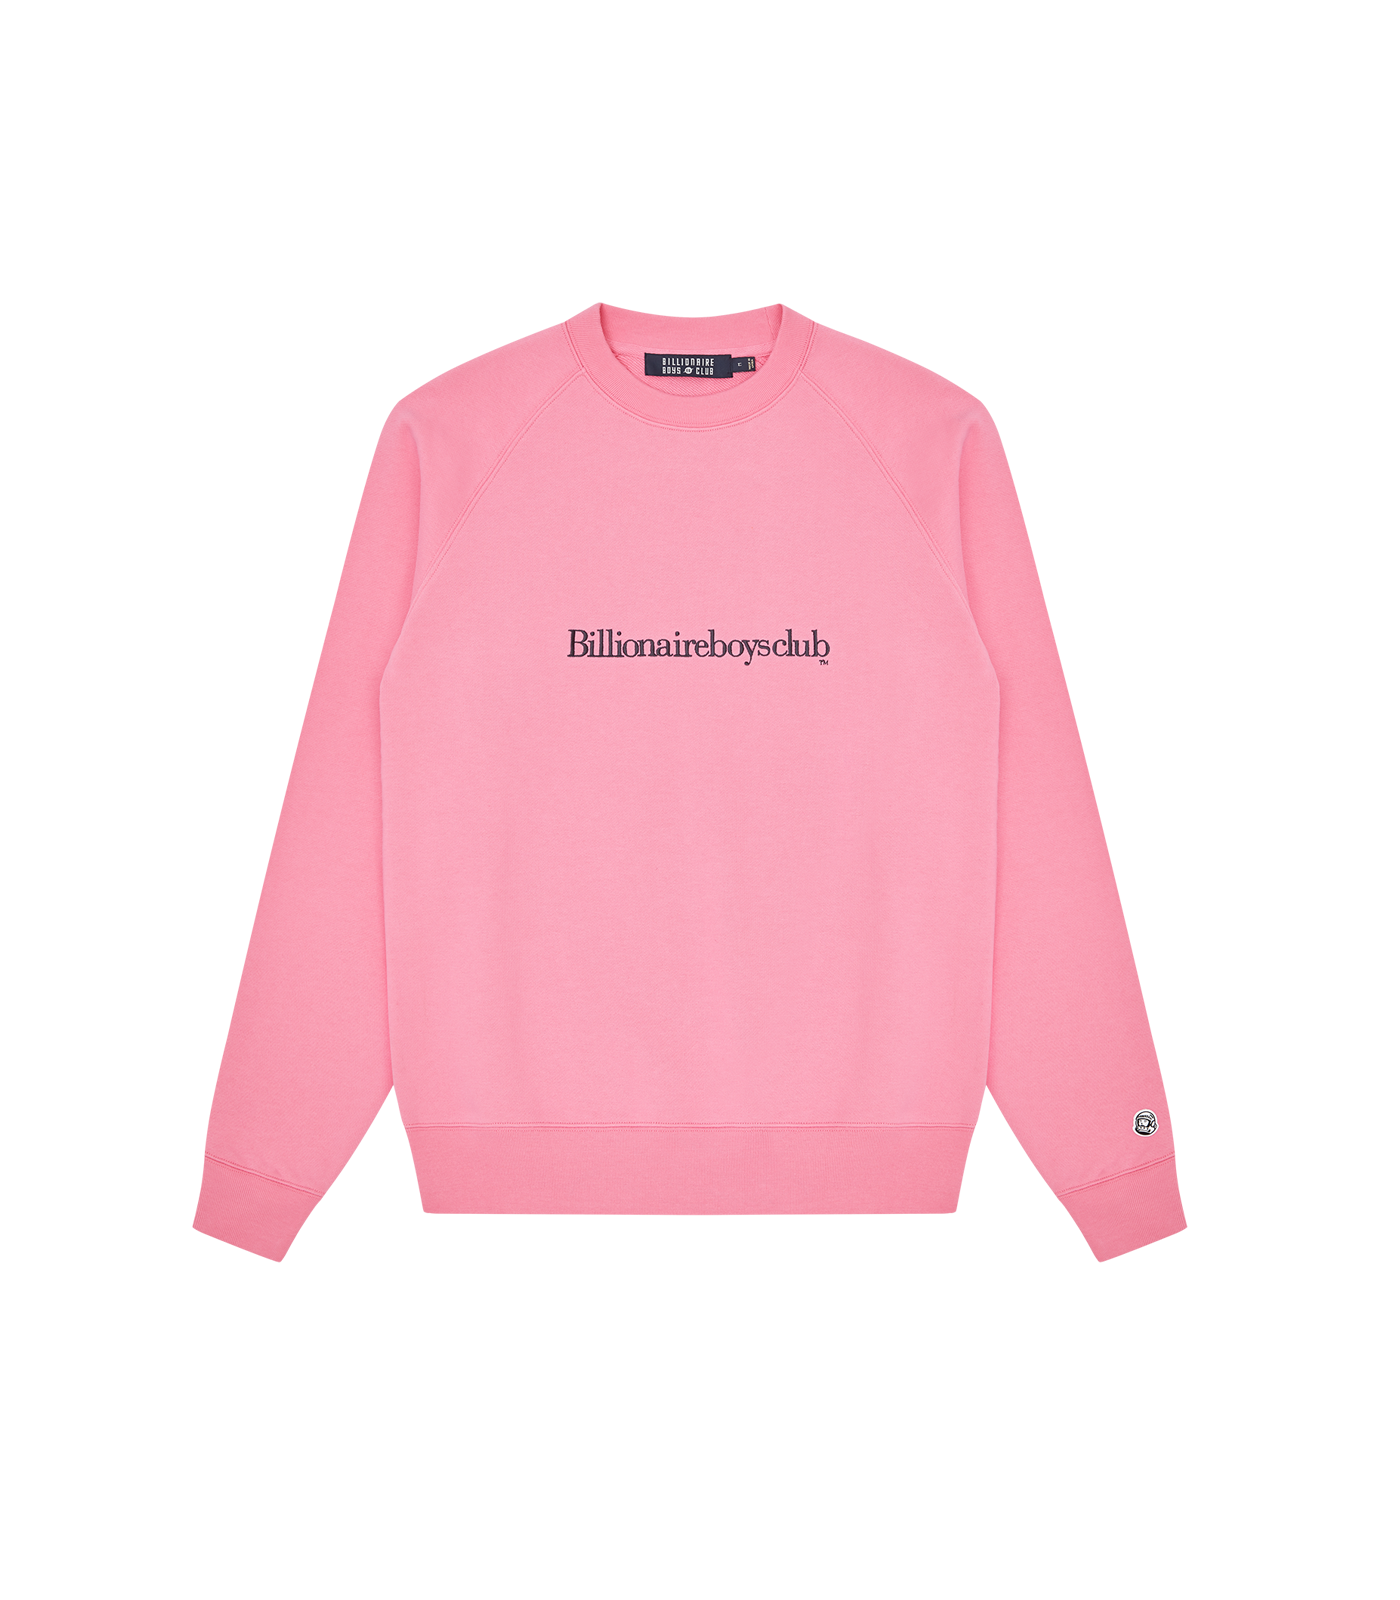 EMBROIDERED LOGO CREWNECK - PINK